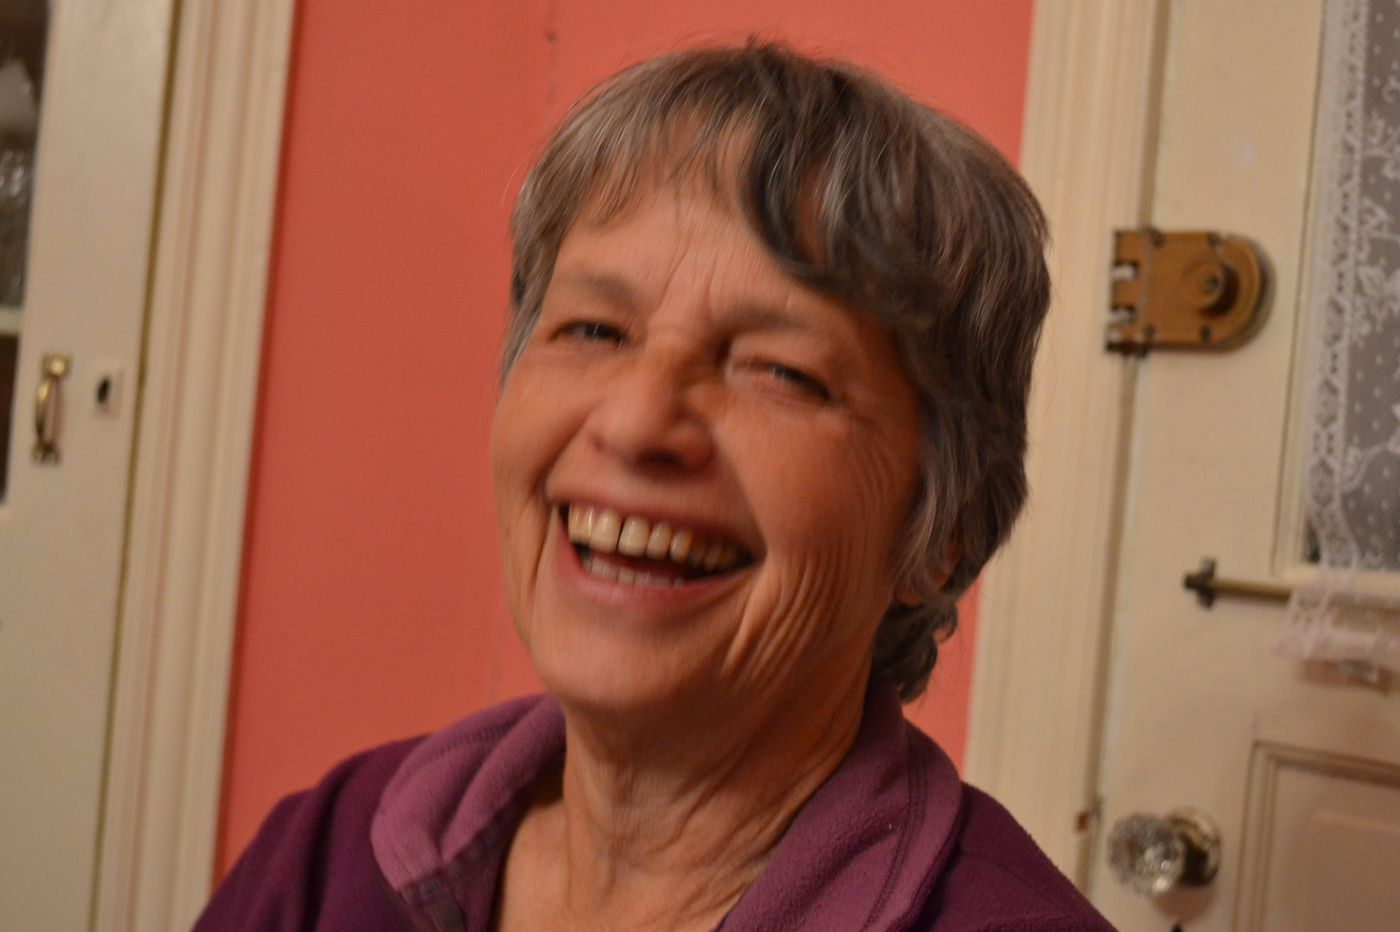 Jane Hinkle, 67, a business writer, teacher, and mother